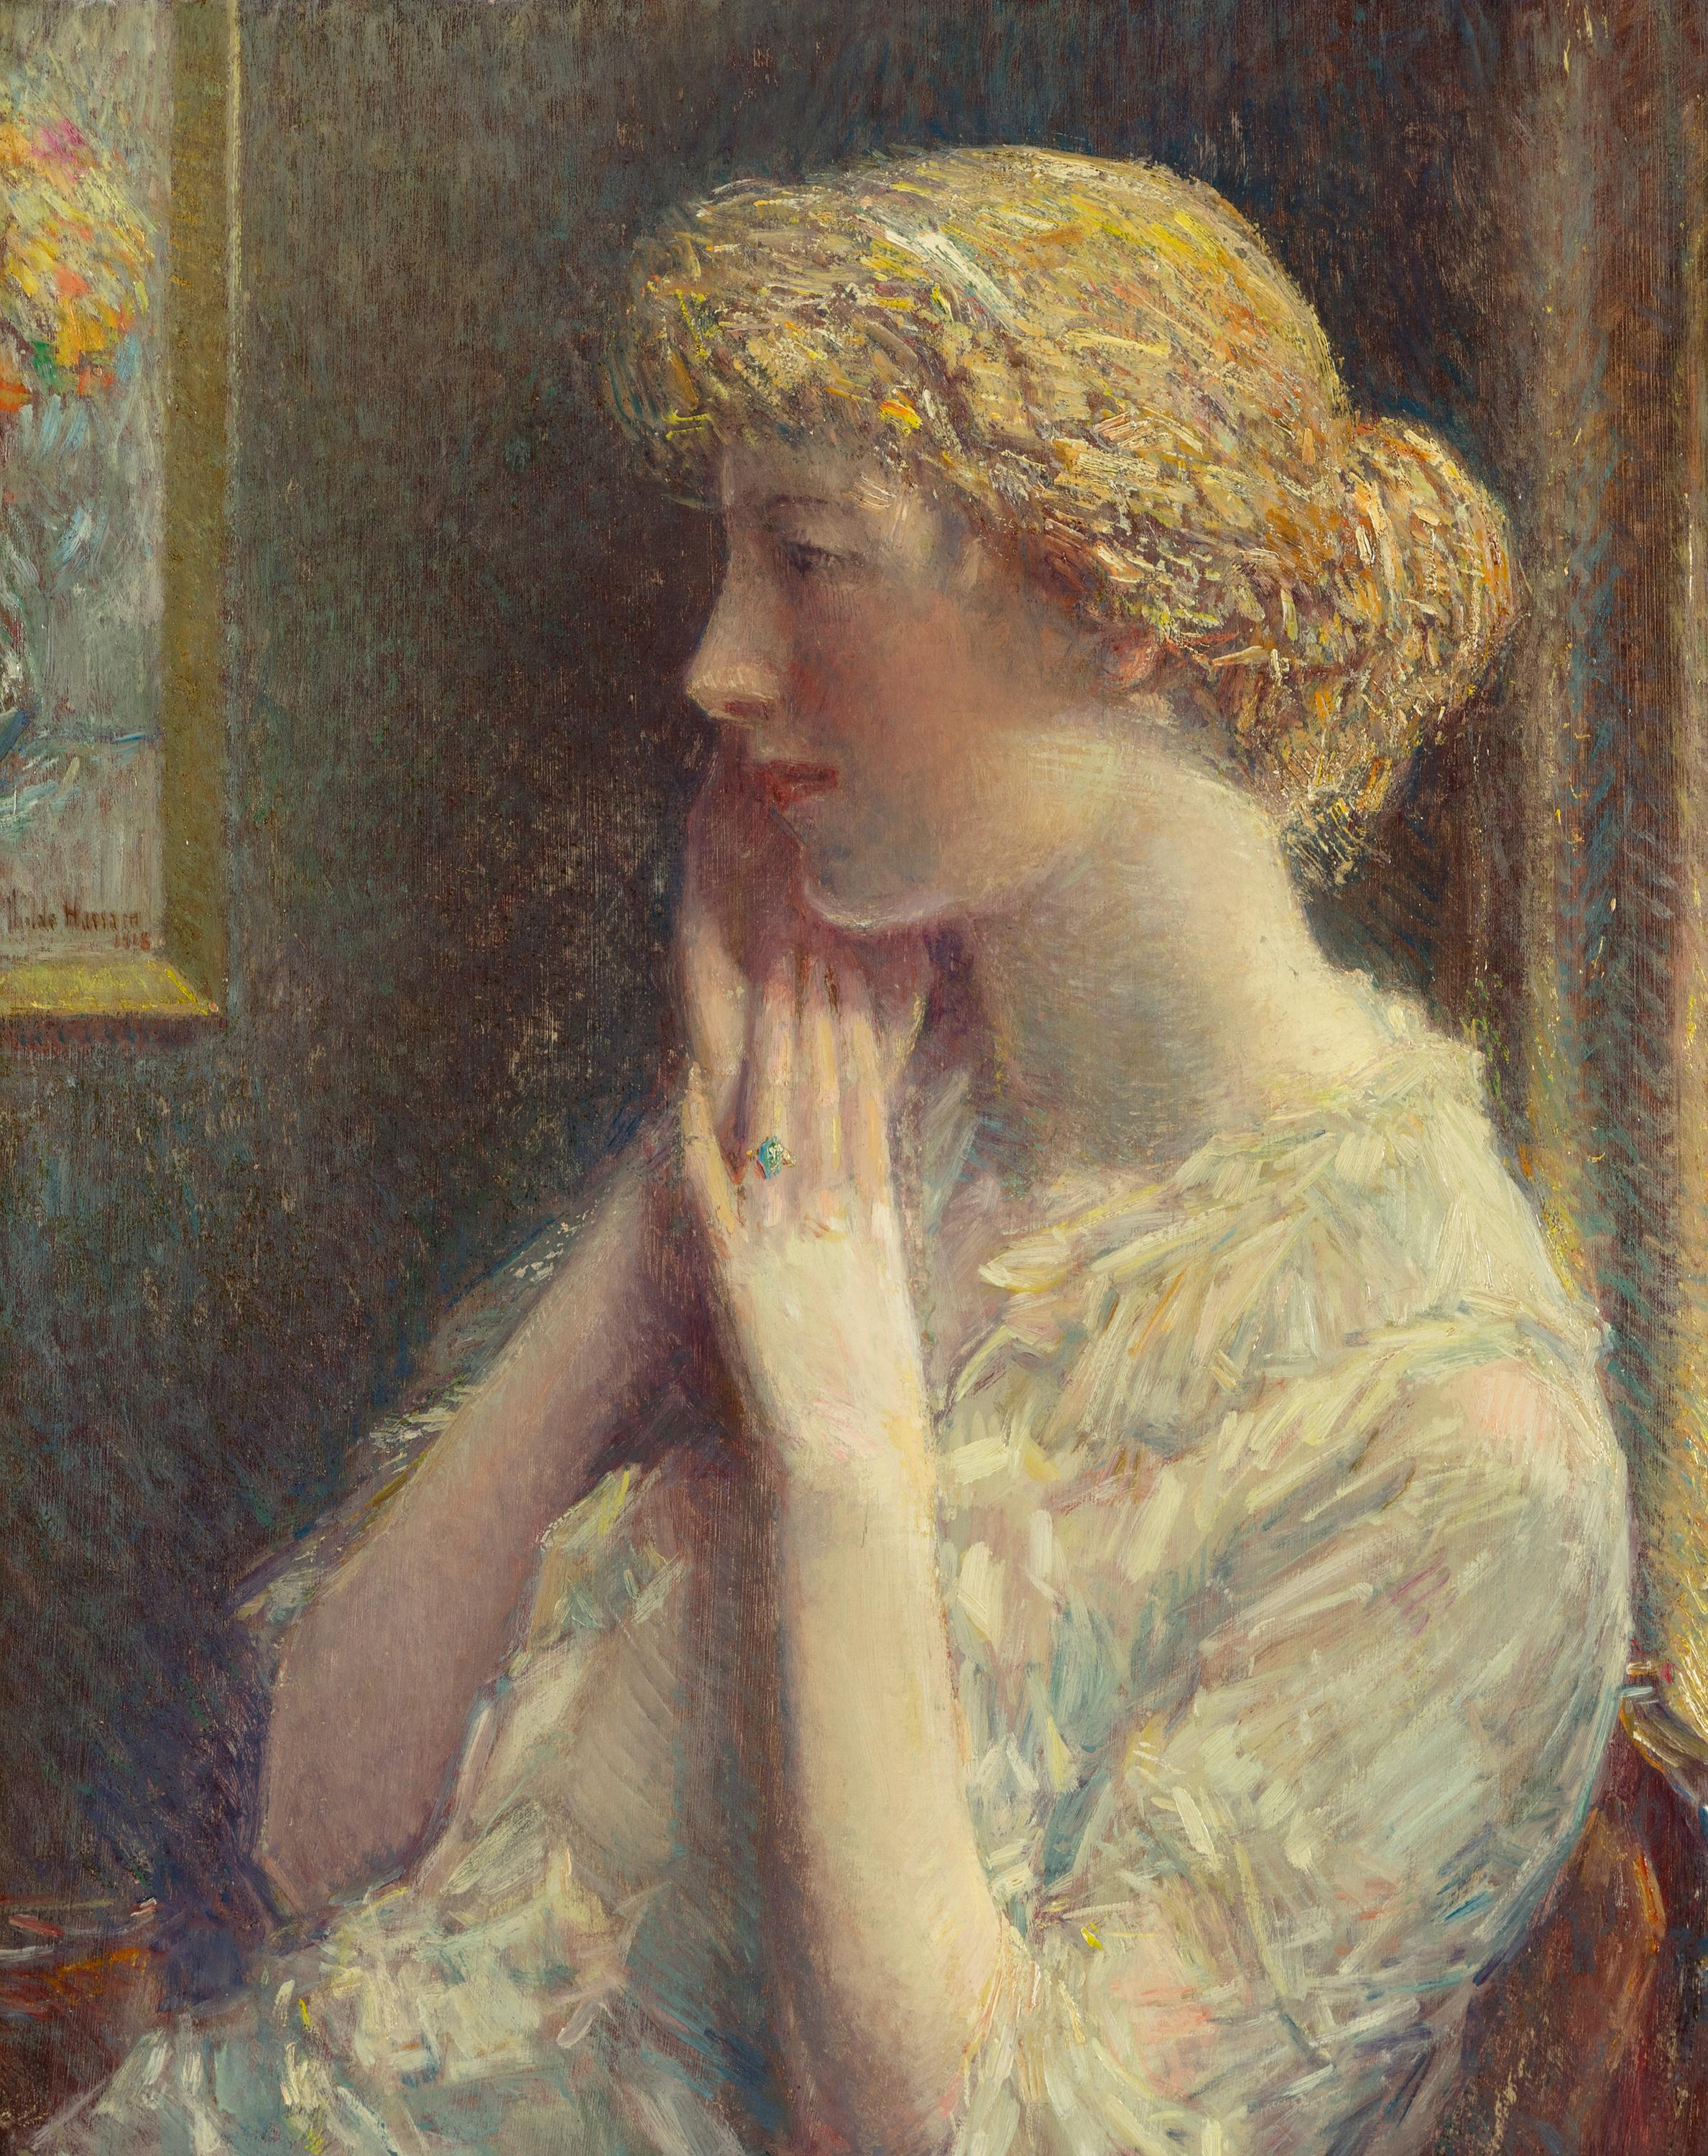 The Ash Blonde, 1918, by Childe Hassam, offered by Heather James Fine Art